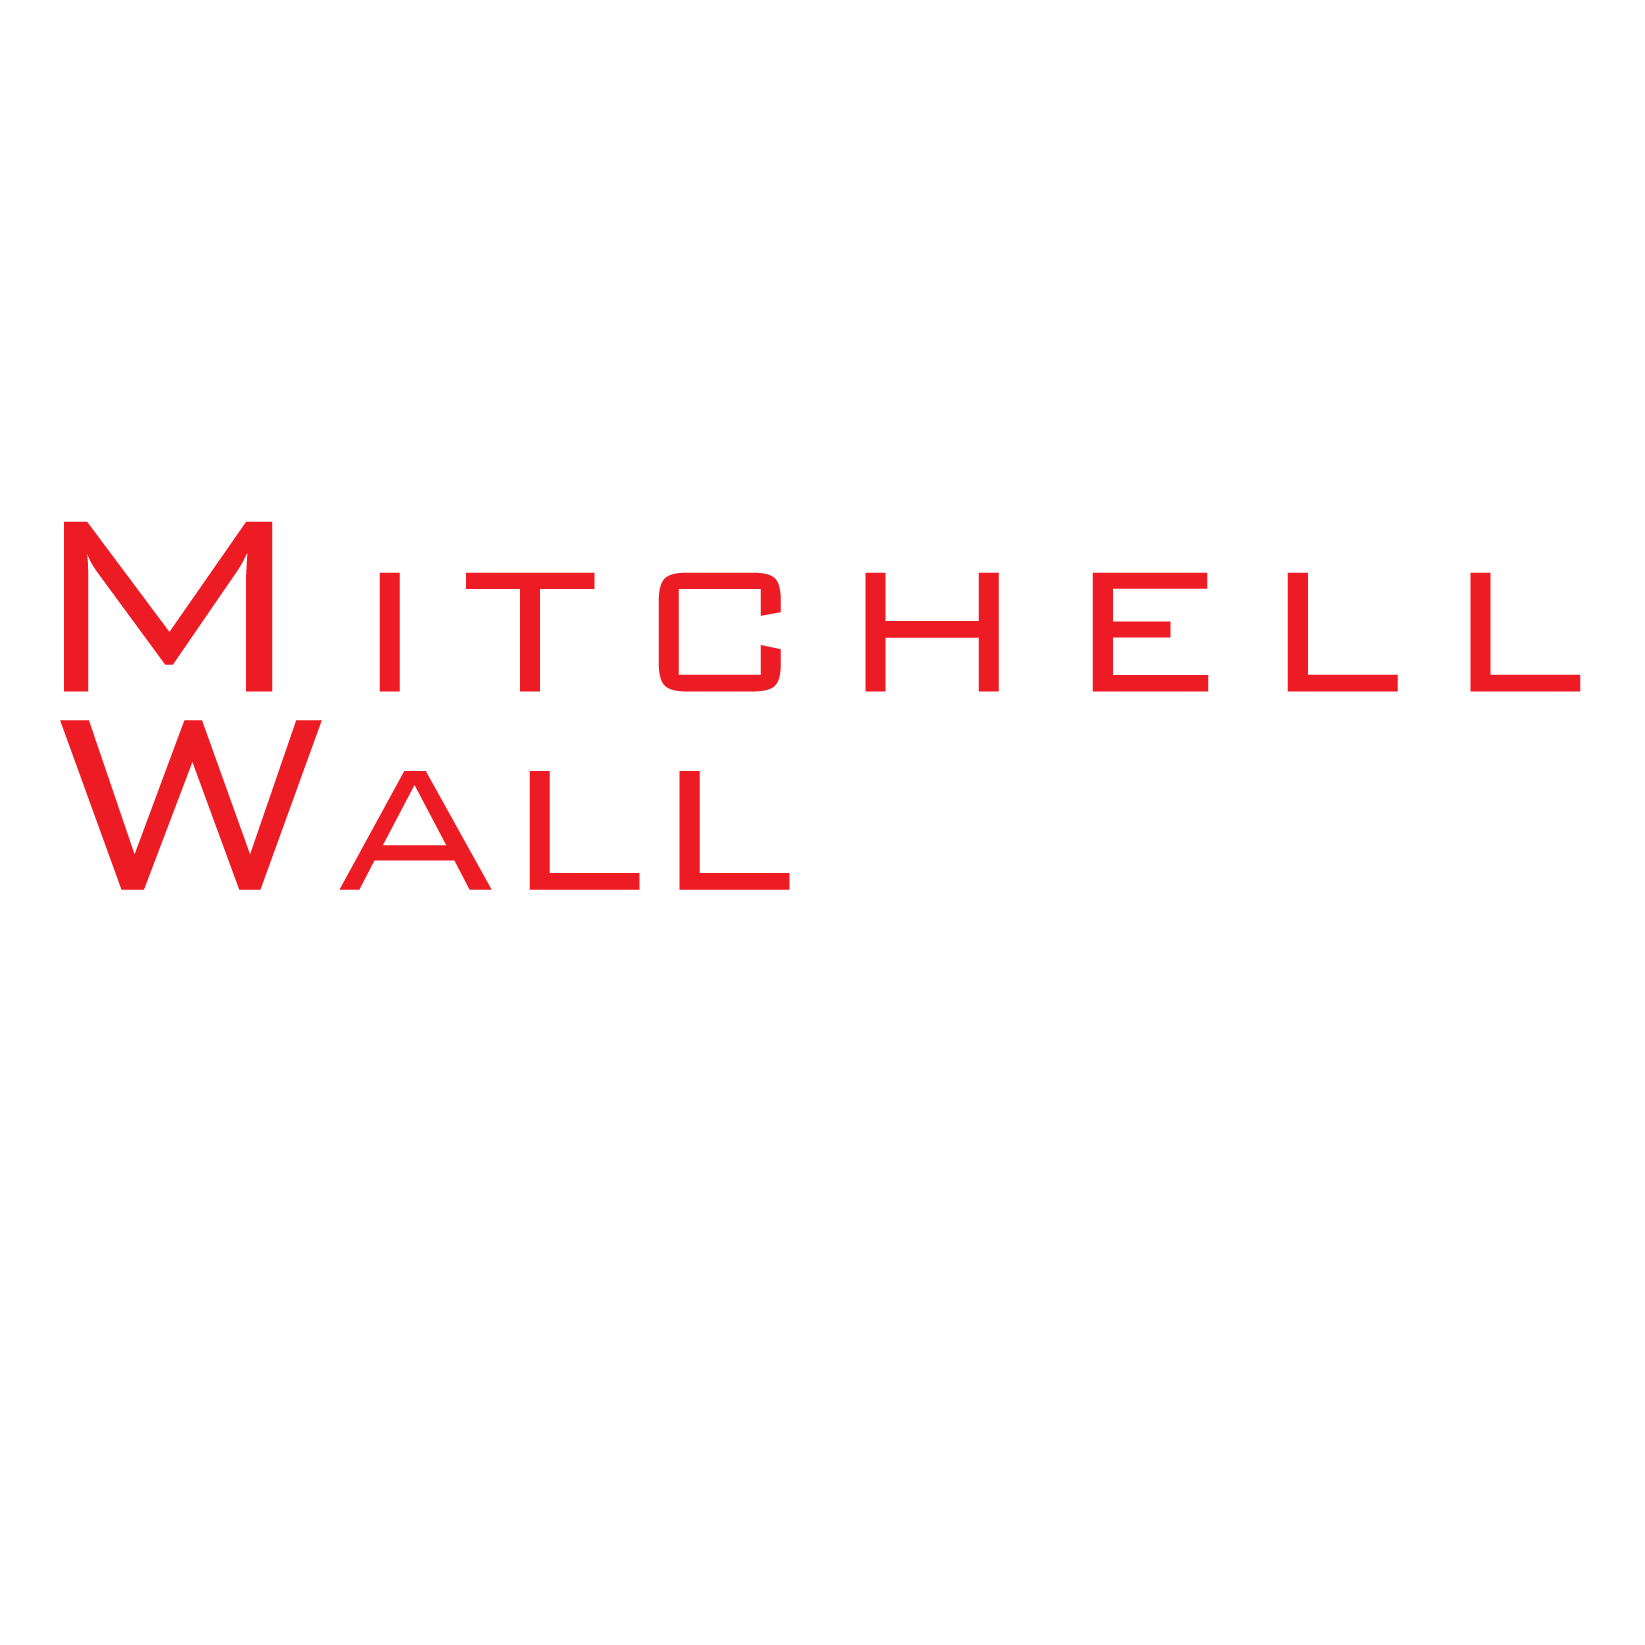 Mitchell Wall Architecture and Design image 14